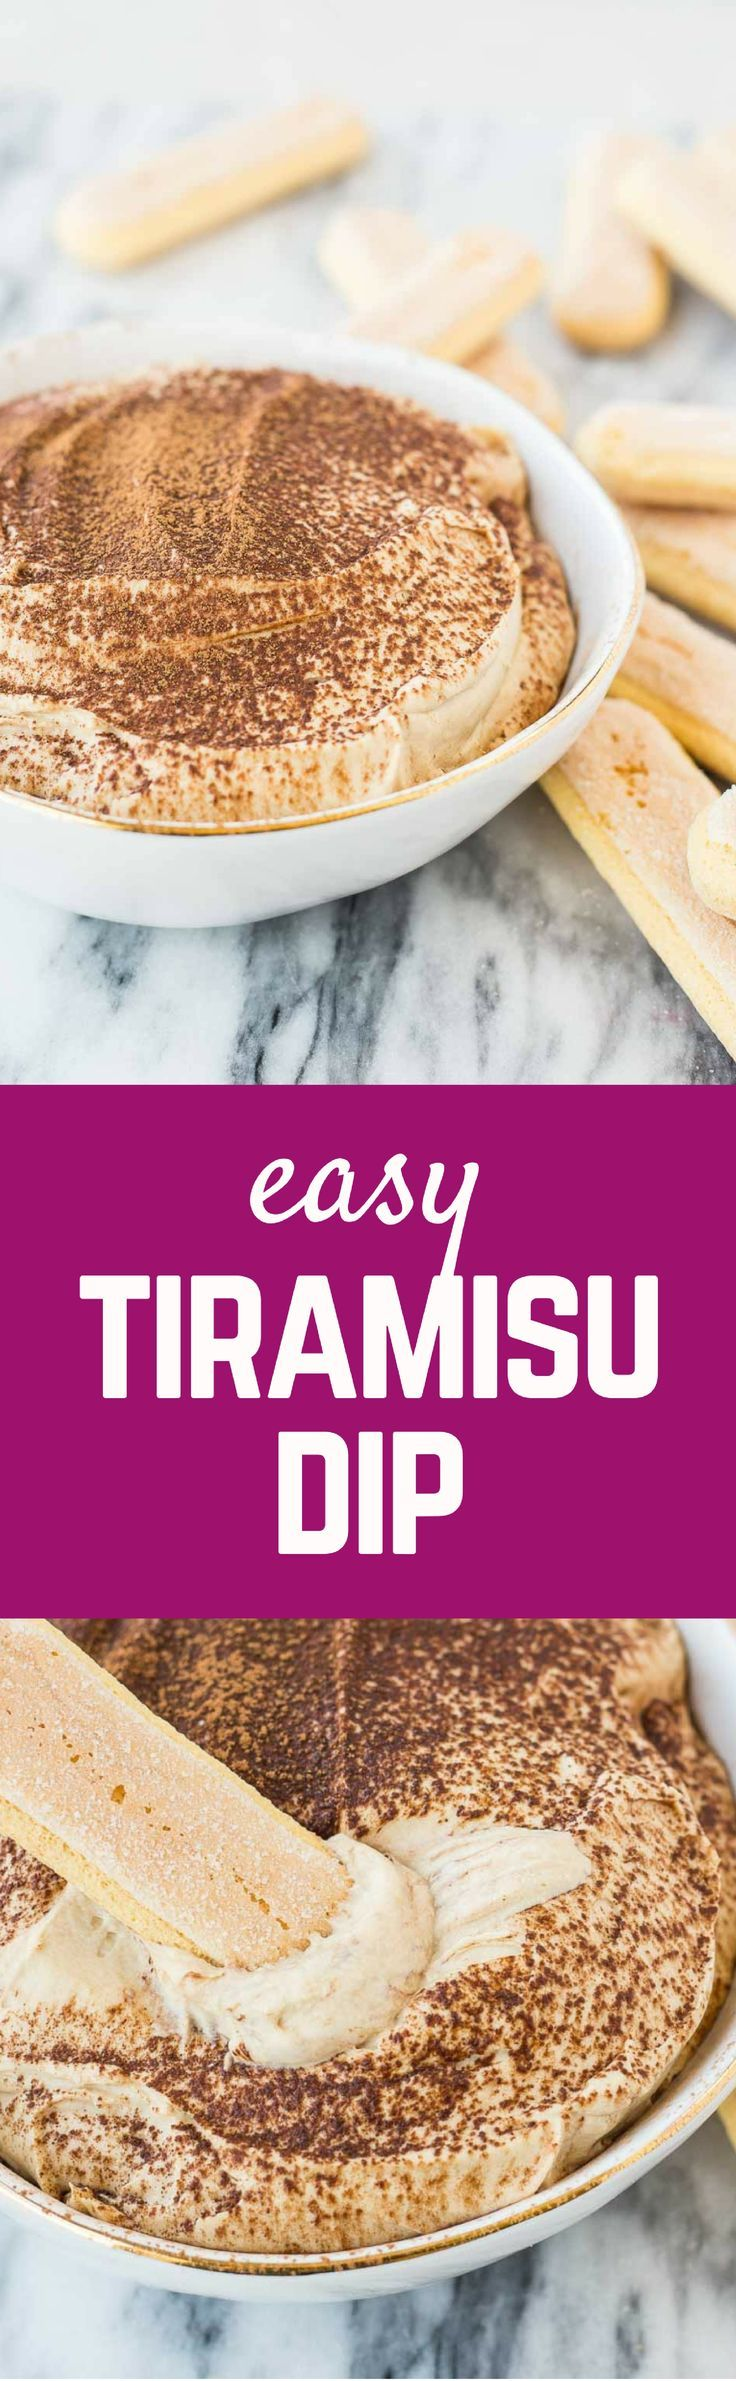 With all the great taste of tiramisu, but in an easy, fun, dip-able format, this tiramisu dip is going to become an instant party favorite! Get the easy dessert recipe on http://RachelCooks.com! #sponsored @Milk